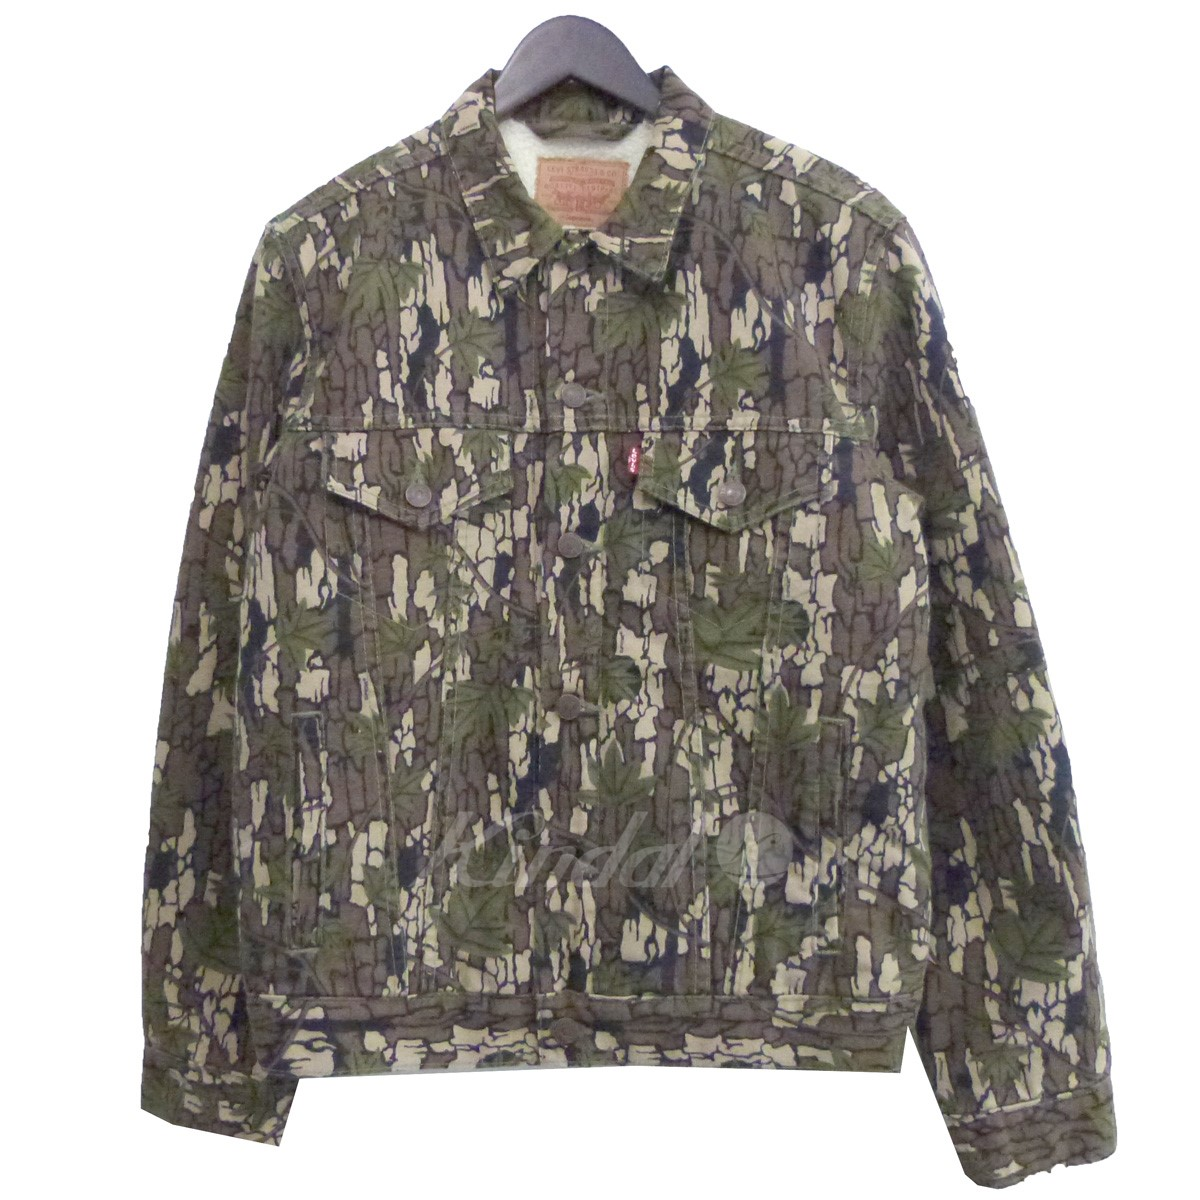 【中古】Supreme×Levis 13AWSherling Lined Camoflage Canvas Trucker Jacket 【送料無料】 【138512】 【KIND1550】